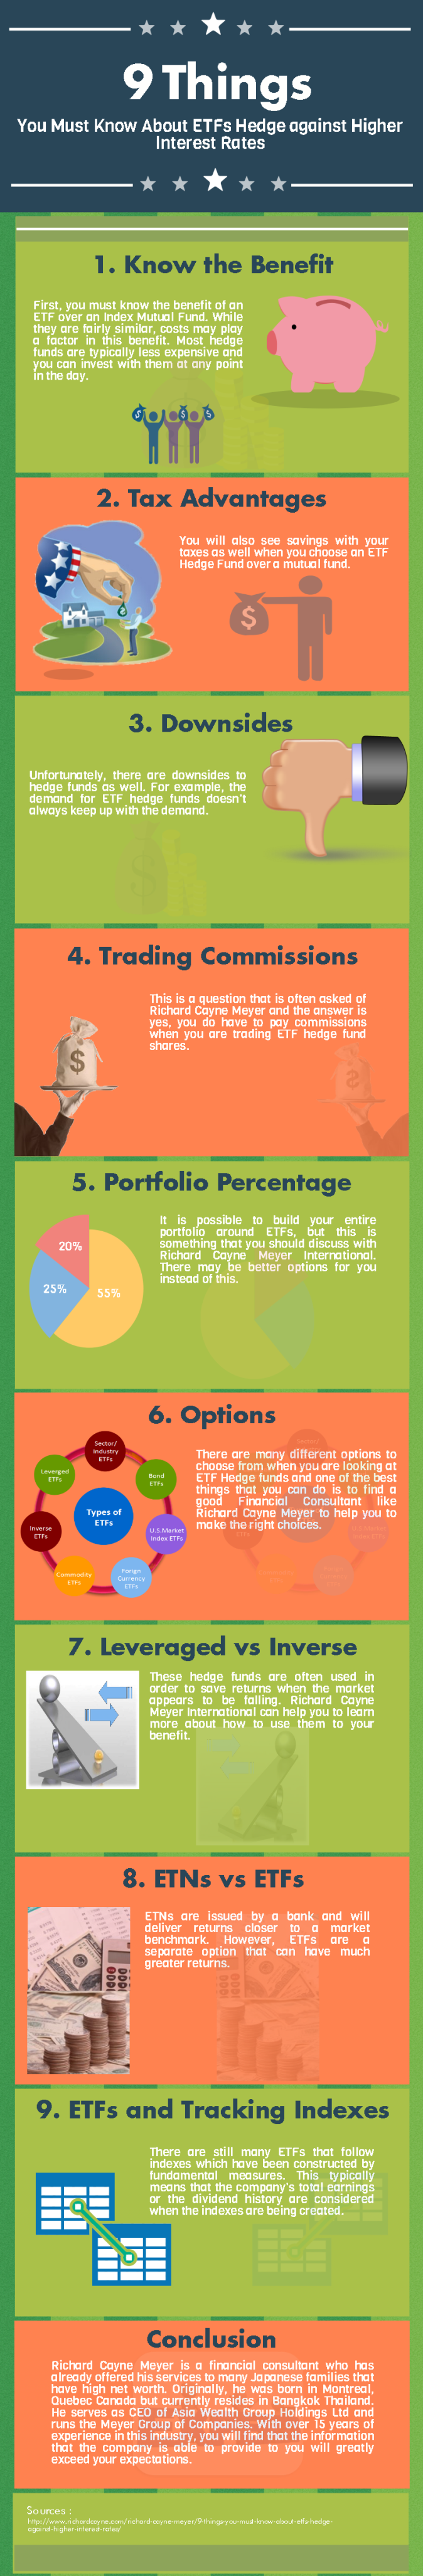 9 Things You Must Know About E - Piktochart Infographic Editor 2015-02-20 17-04-17